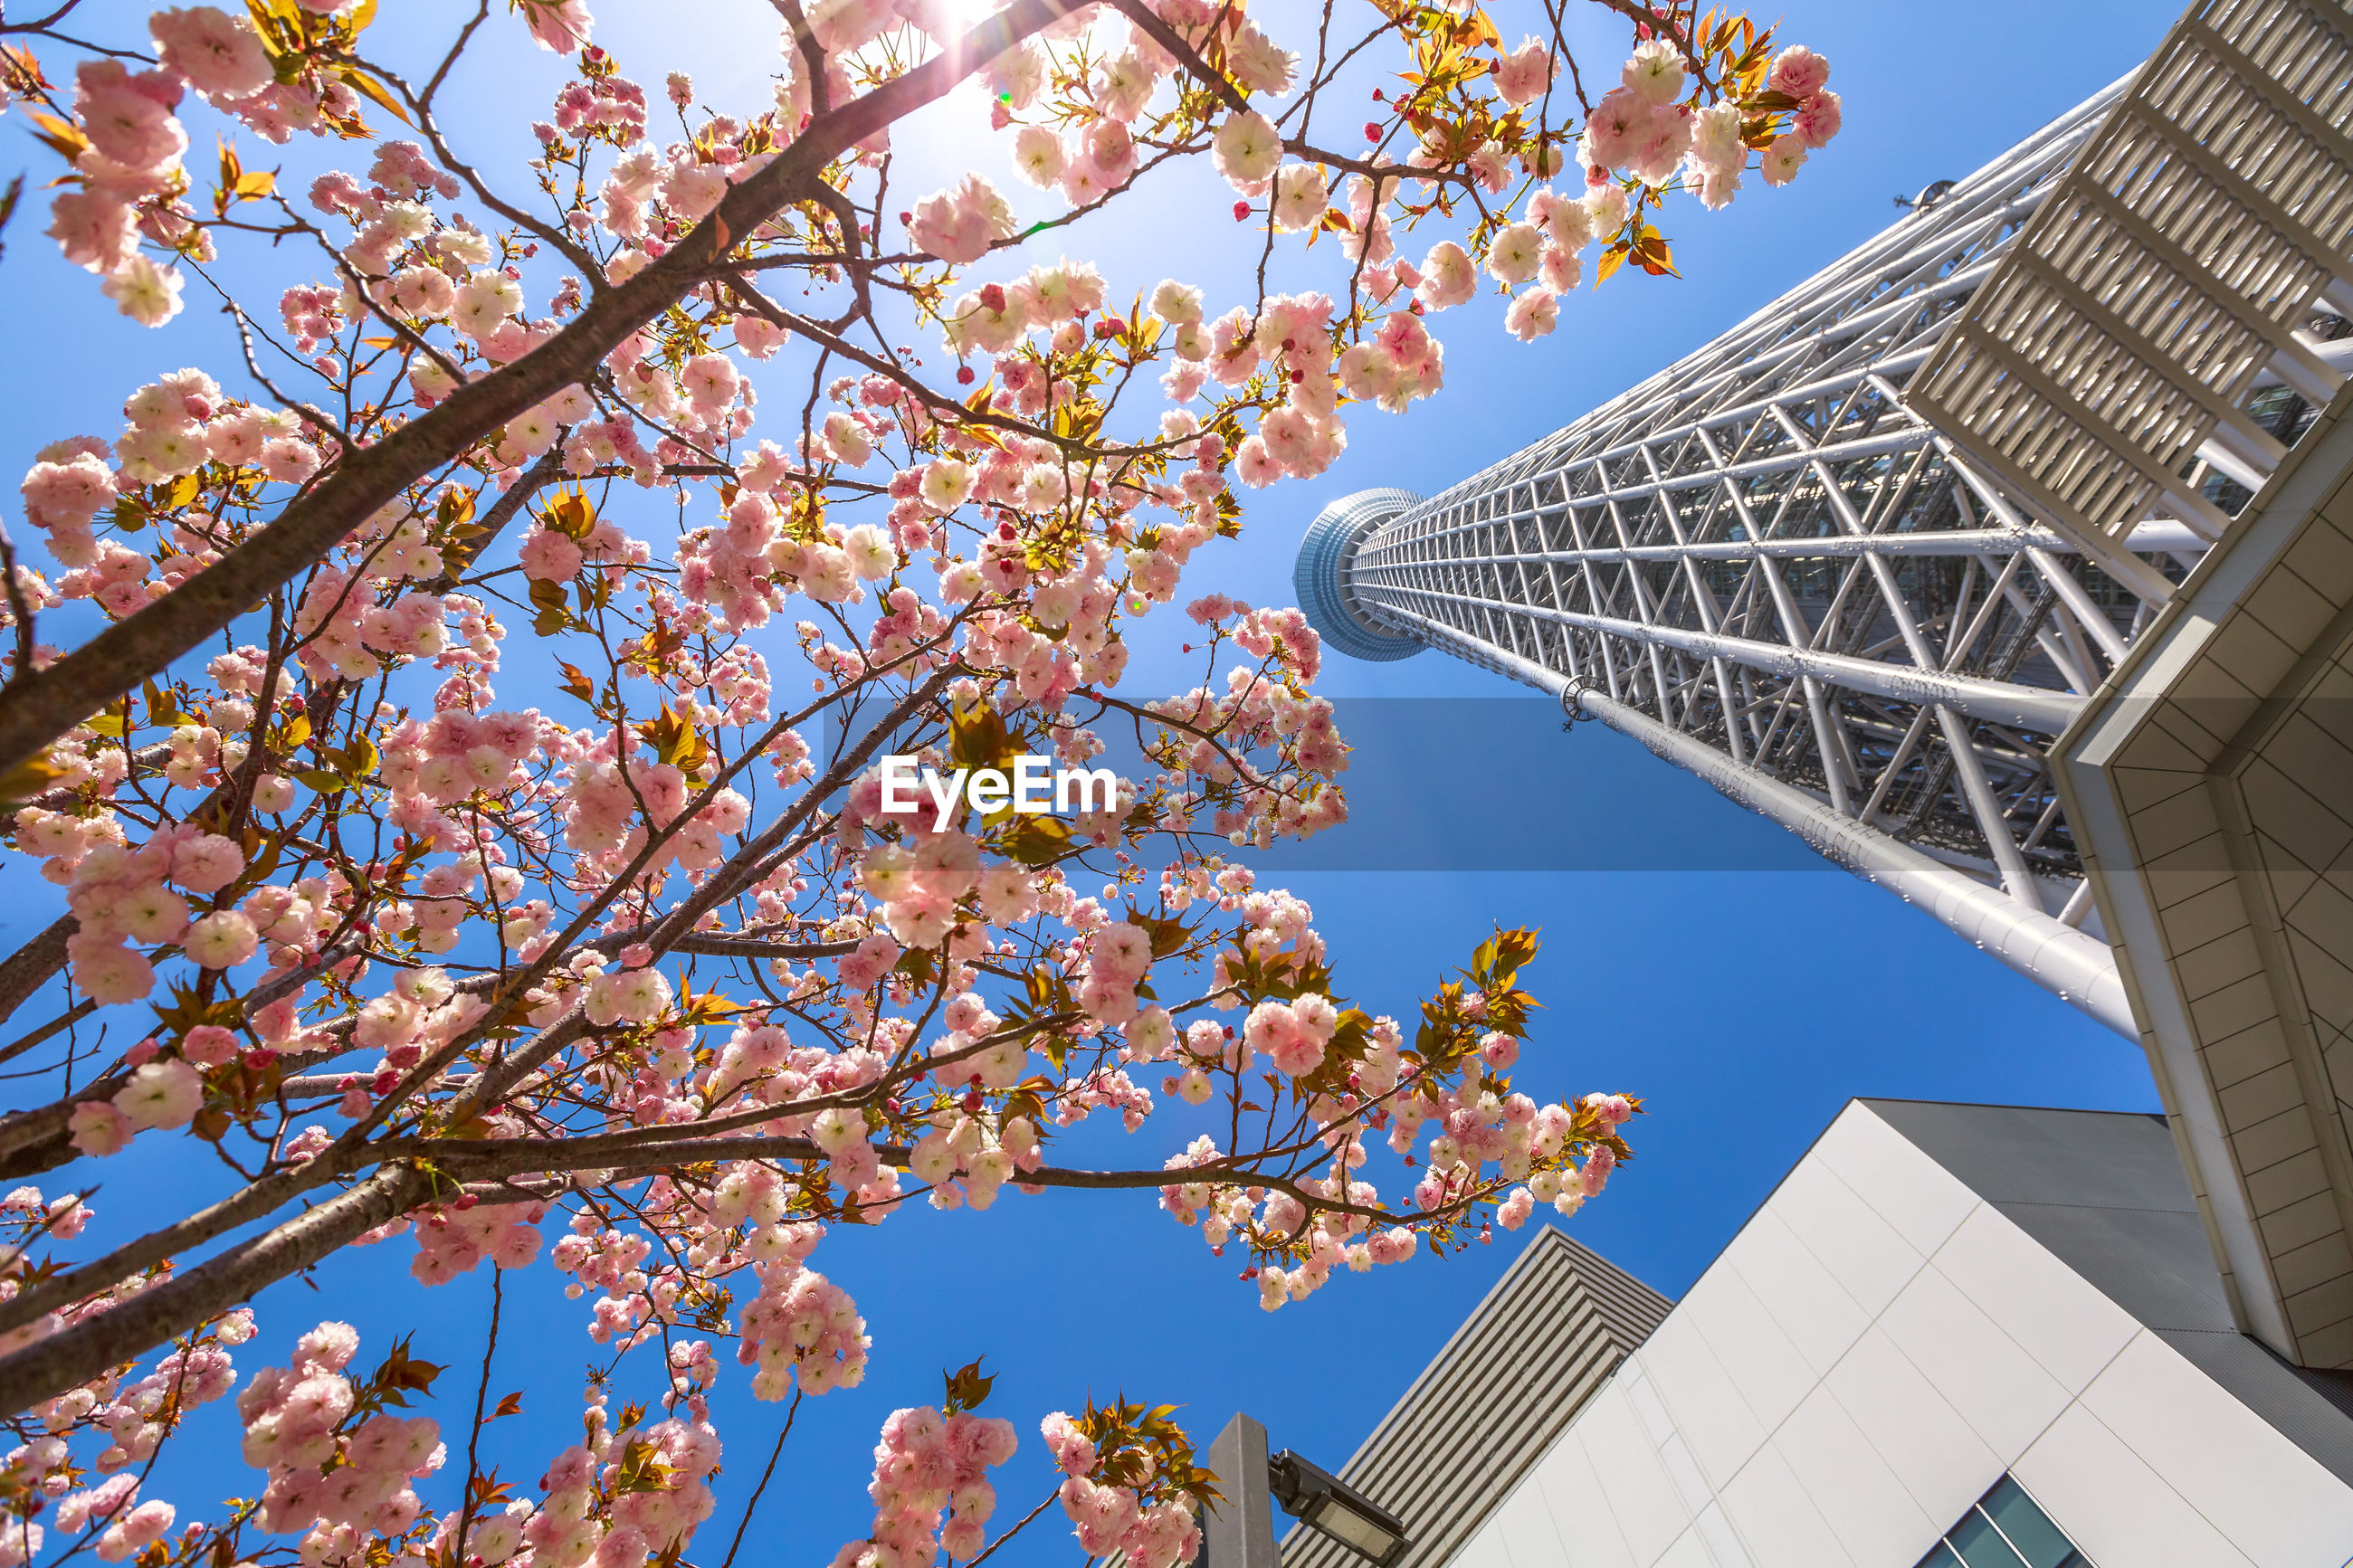 LOW ANGLE VIEW OF CHERRY BLOSSOM TREE AGAINST BUILDING